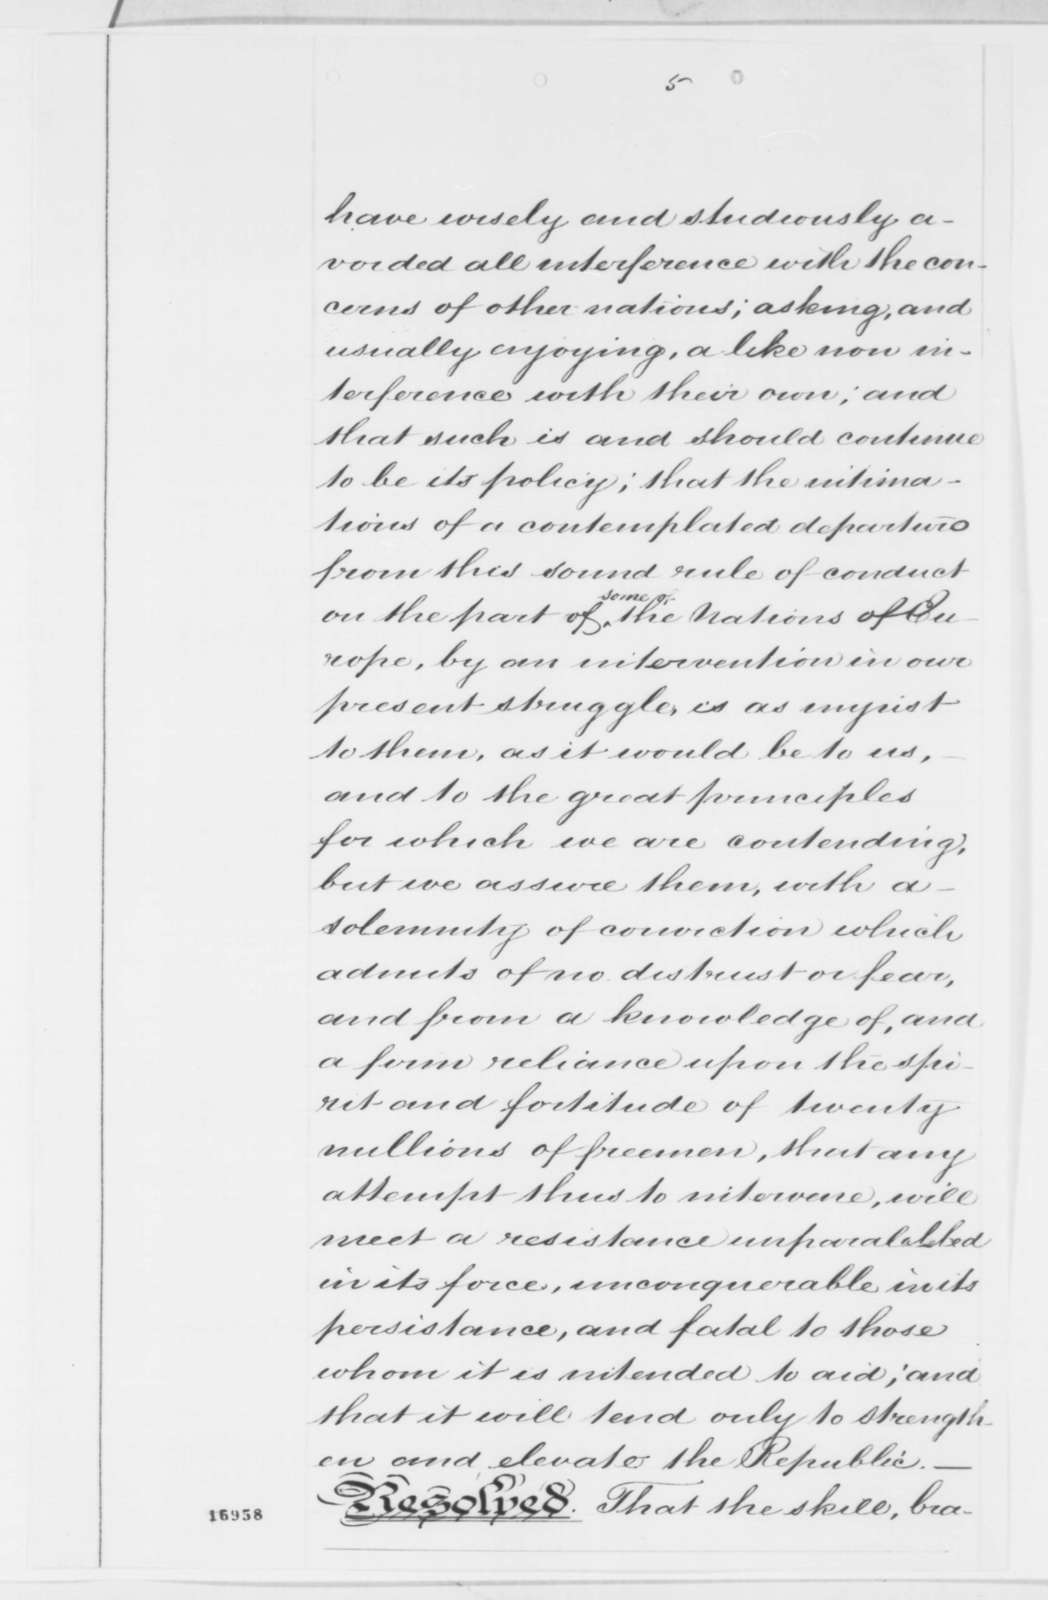 John A. Stevens Jr. to Abraham Lincoln, Thursday, July 10, 1862  (Sends proceedings and resolutions of a joint committee in New York City)